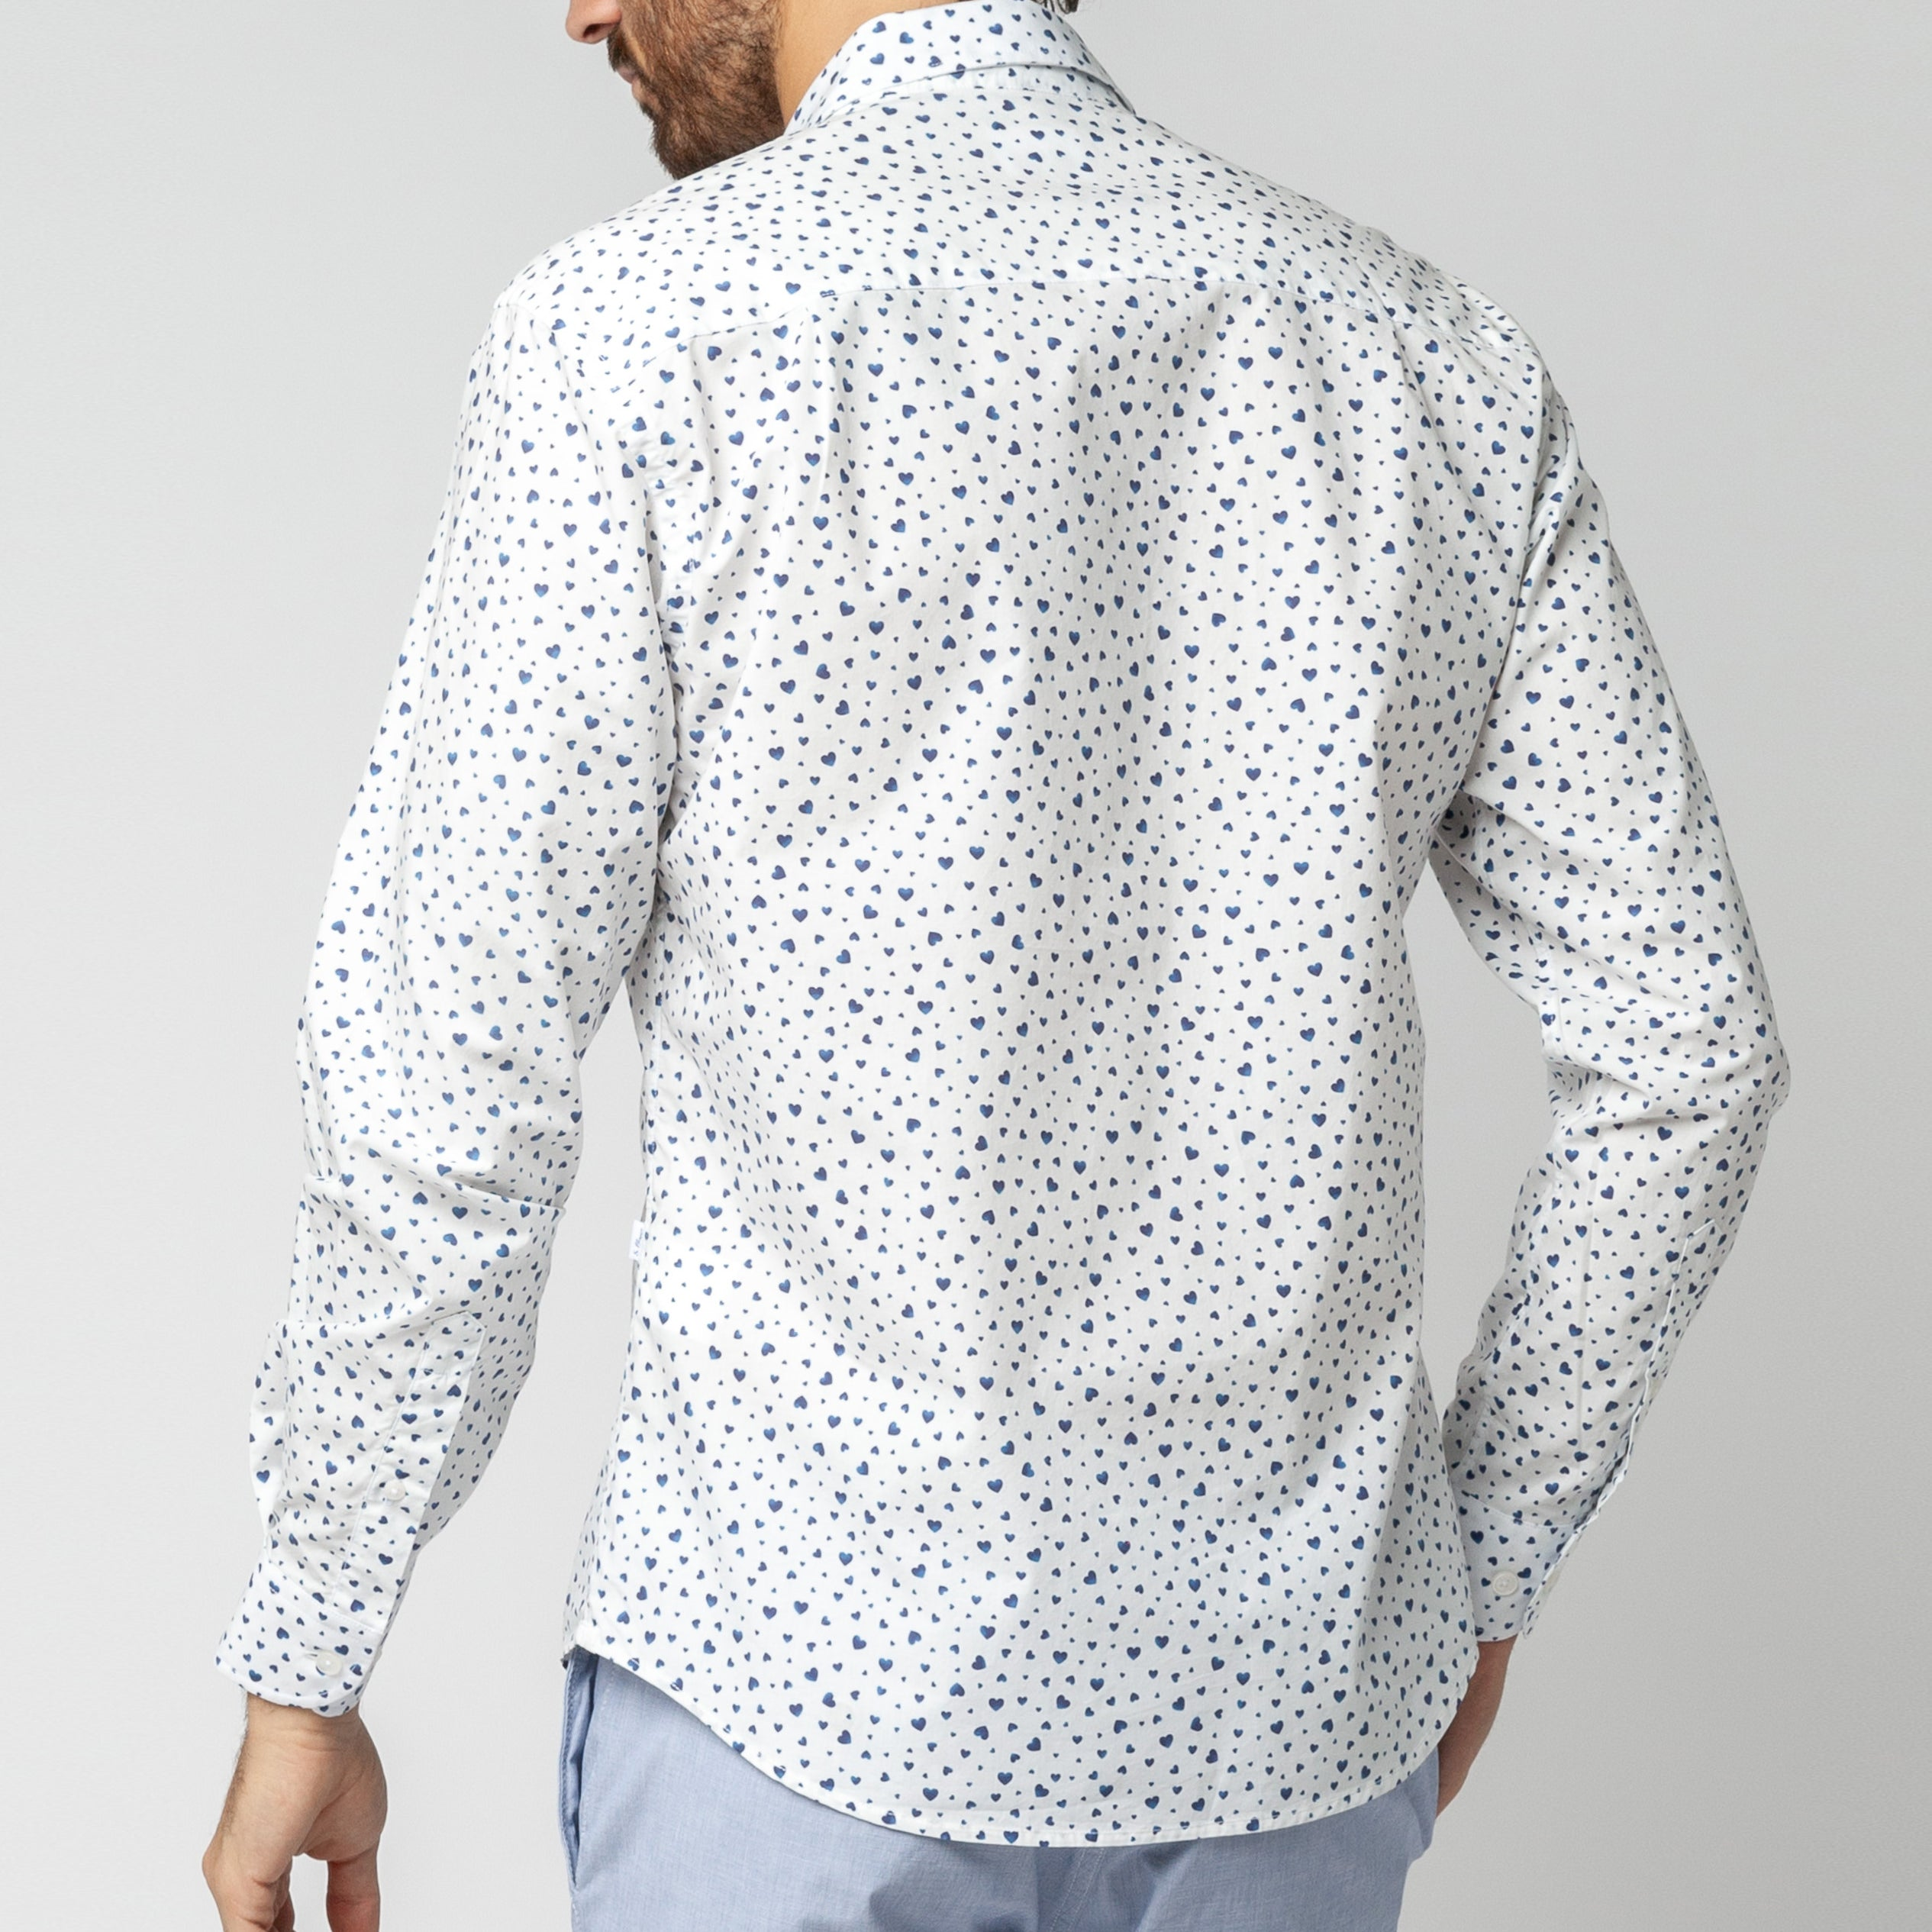 Indigo Hearts Shirt: White